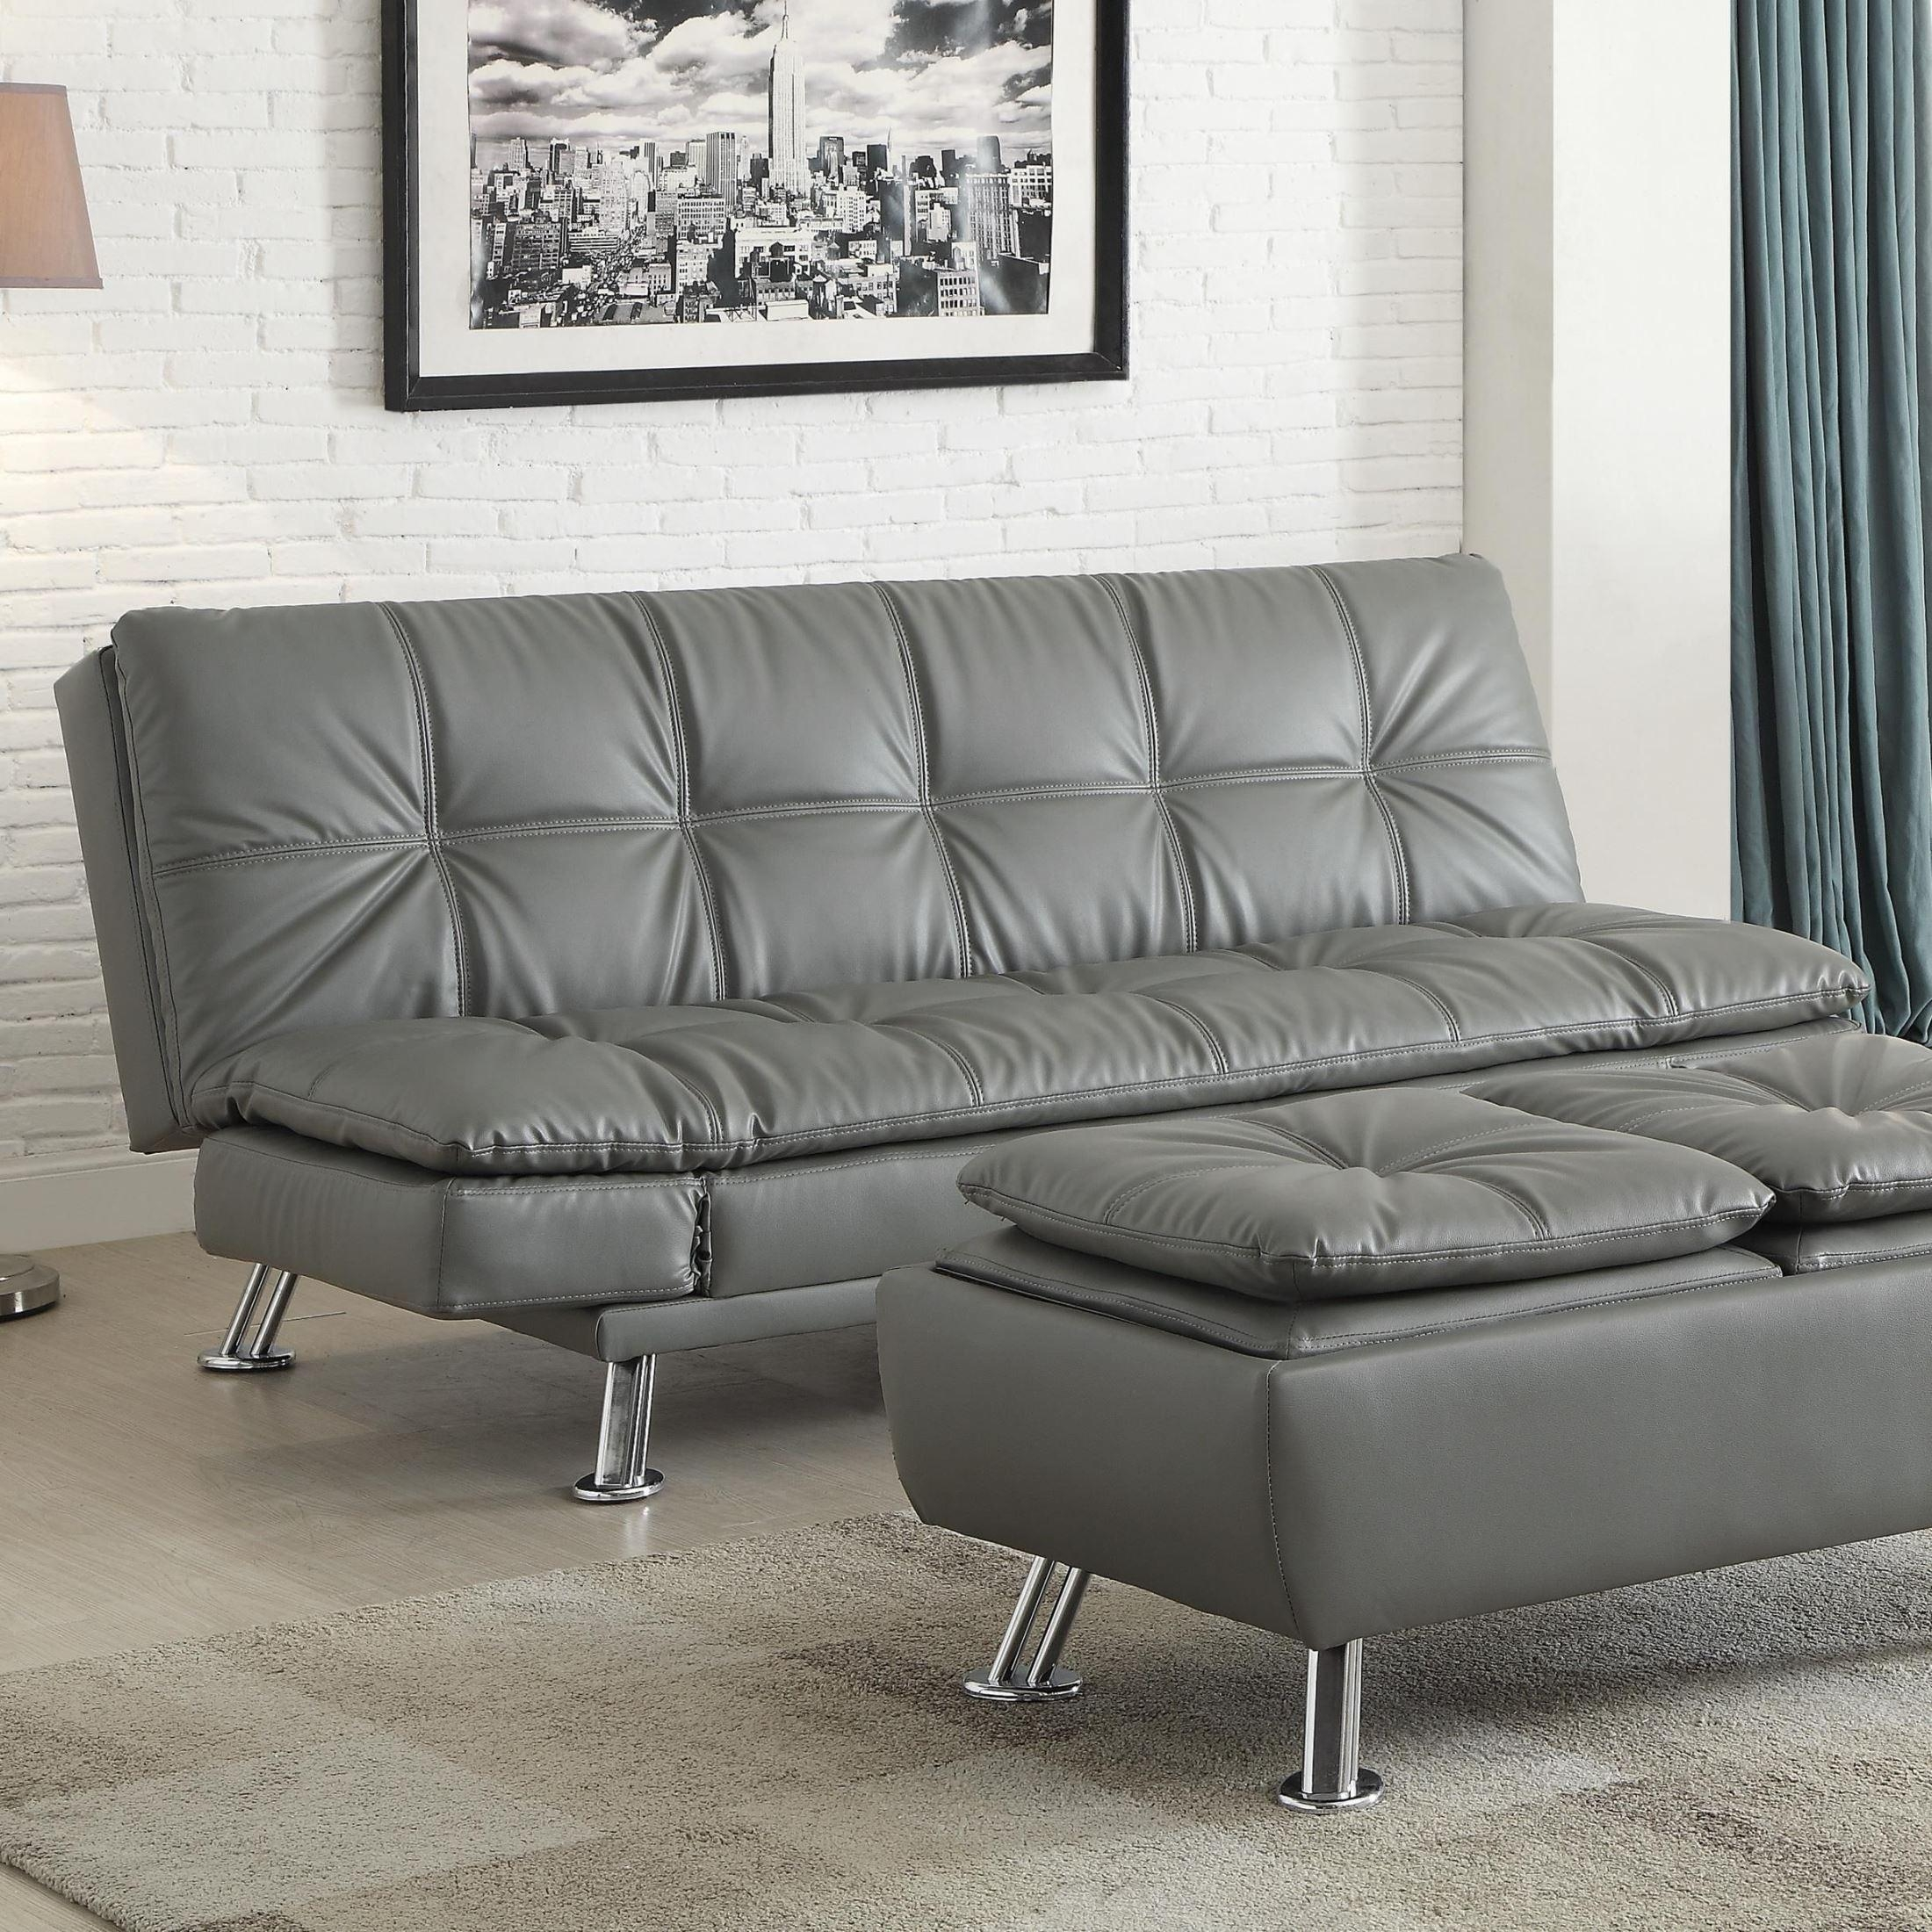 Dilleston Futon Style Living Room Set From Coaster (500096 Intended For Coaster Futon Sofa Beds (View 14 of 20)